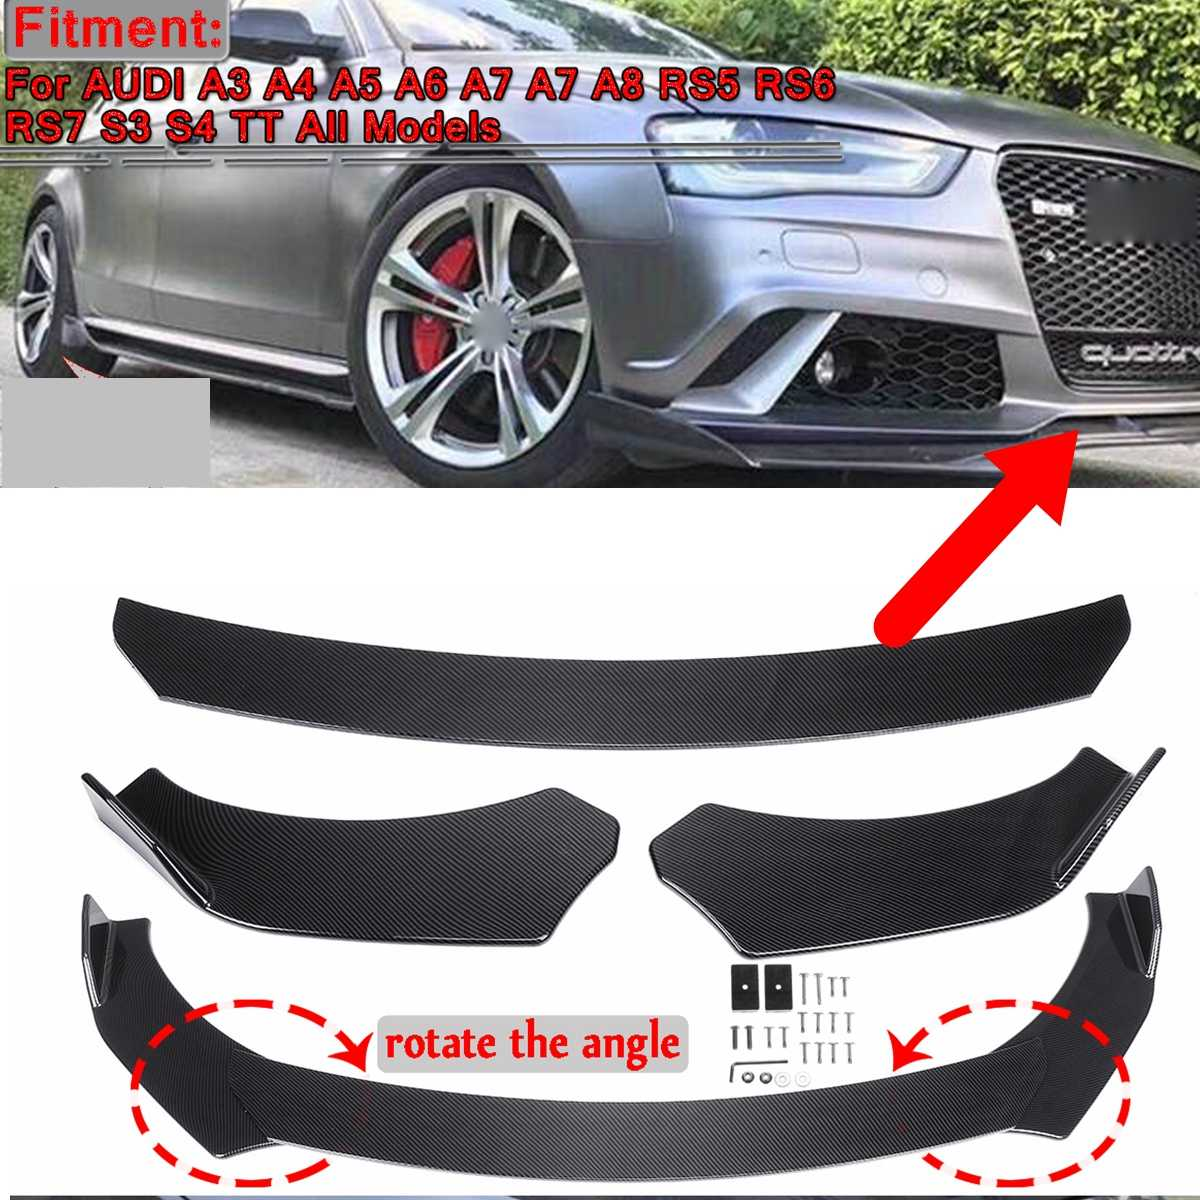 3pcs Universal Car Front Bumper Splitter Lip Spolier Diffuser Body Kit Protector For Audi A3 A4 A5 A6 A7 A8 RS5 RS6 RS7 S3 S4 TT